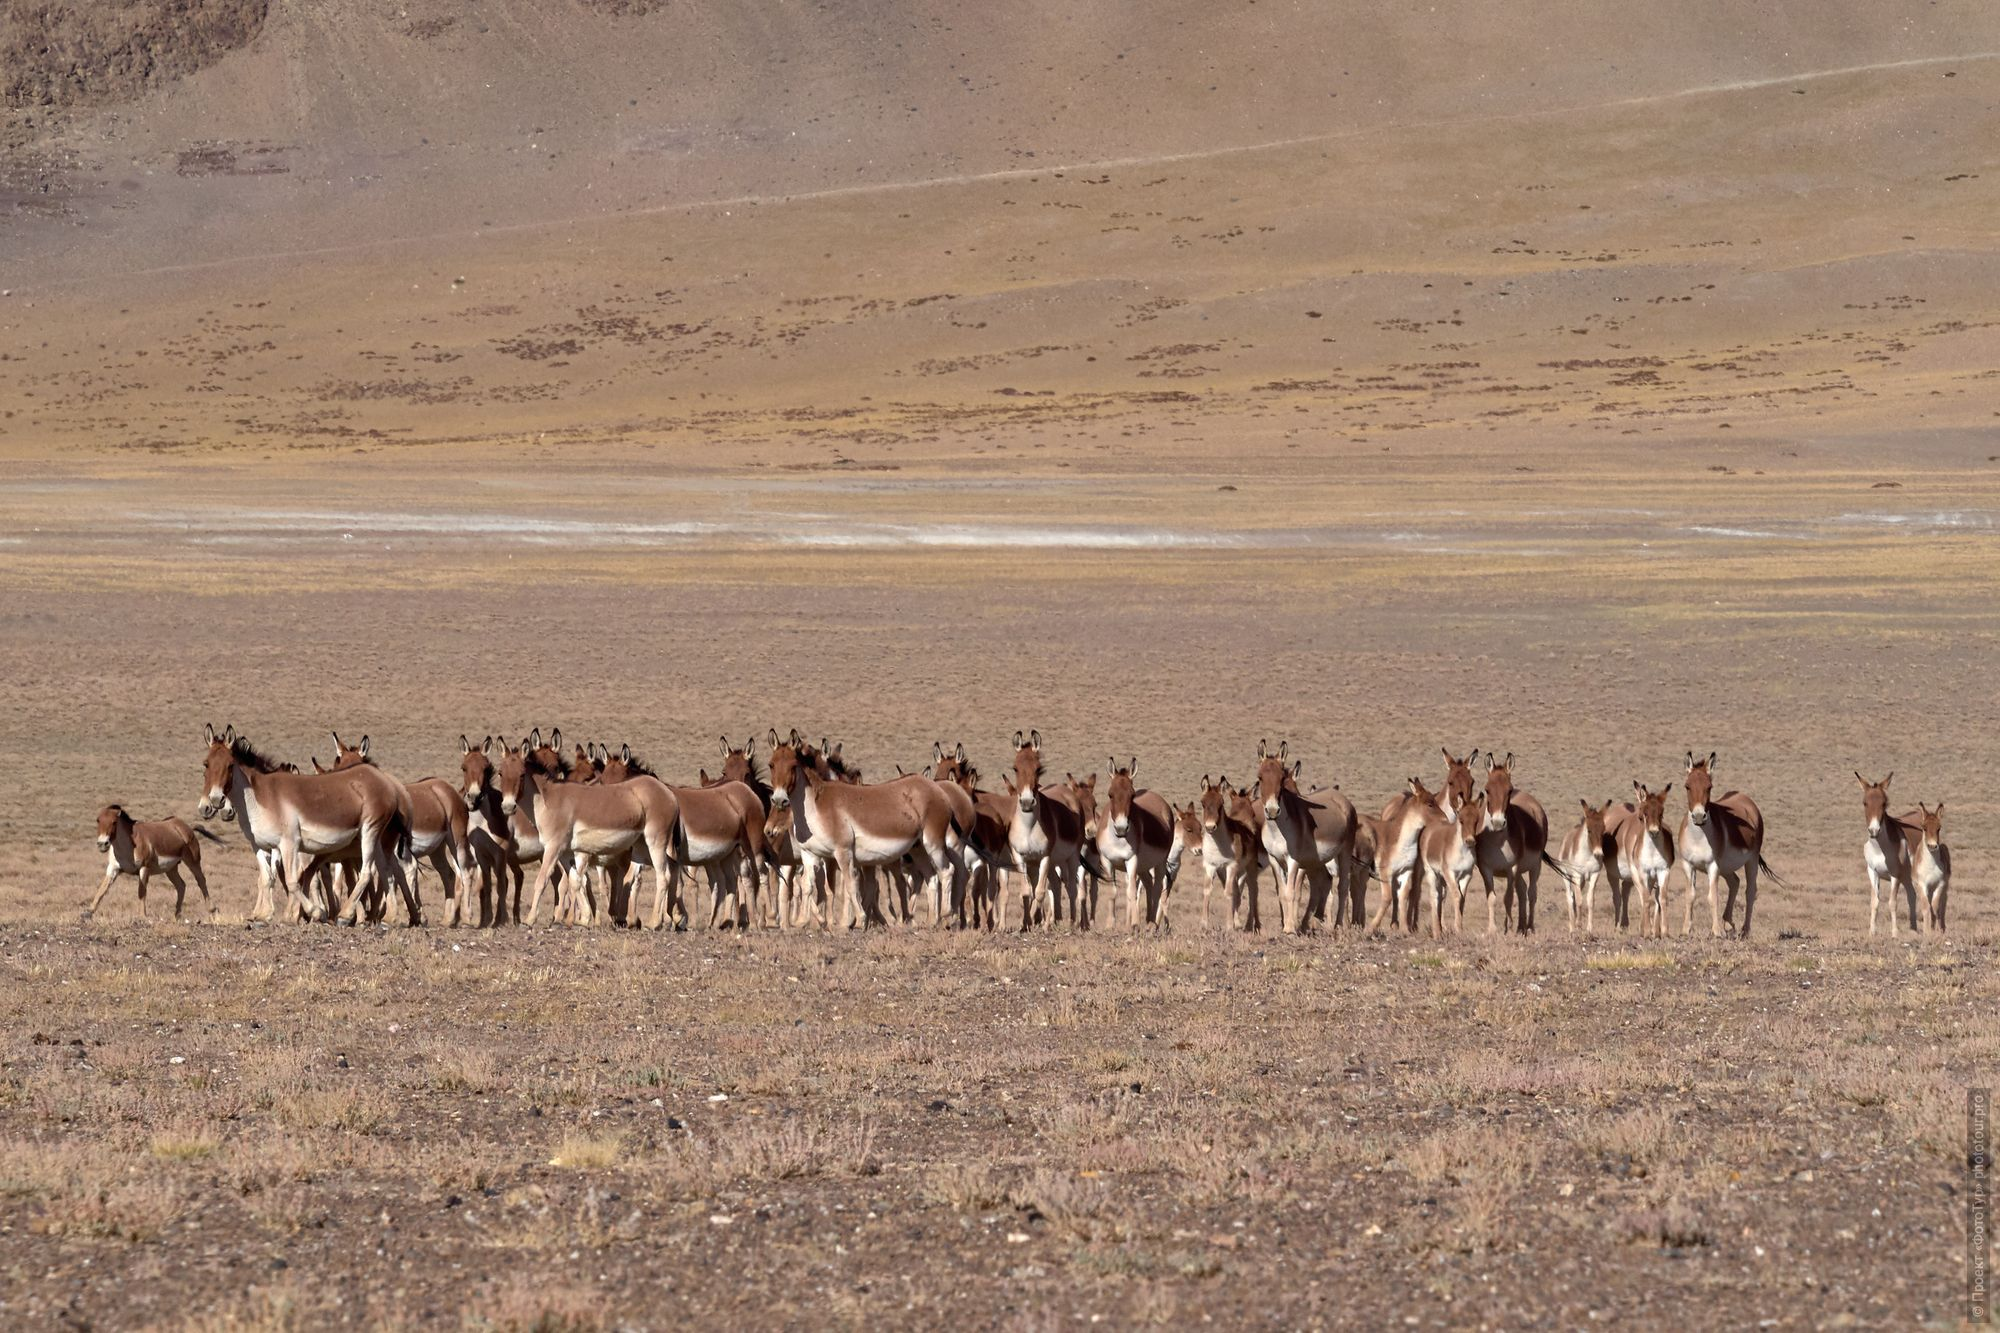 A herd of wild donkeys, or kiangs on Lake Tso Kar. Photo tour / tour Tibet of Lake-1: Pangong, Tso Moriri, Tso Kar, Tso Chiagar, Dance of Tsam on Lake Pangong, 19.06. - 28.06.2021.